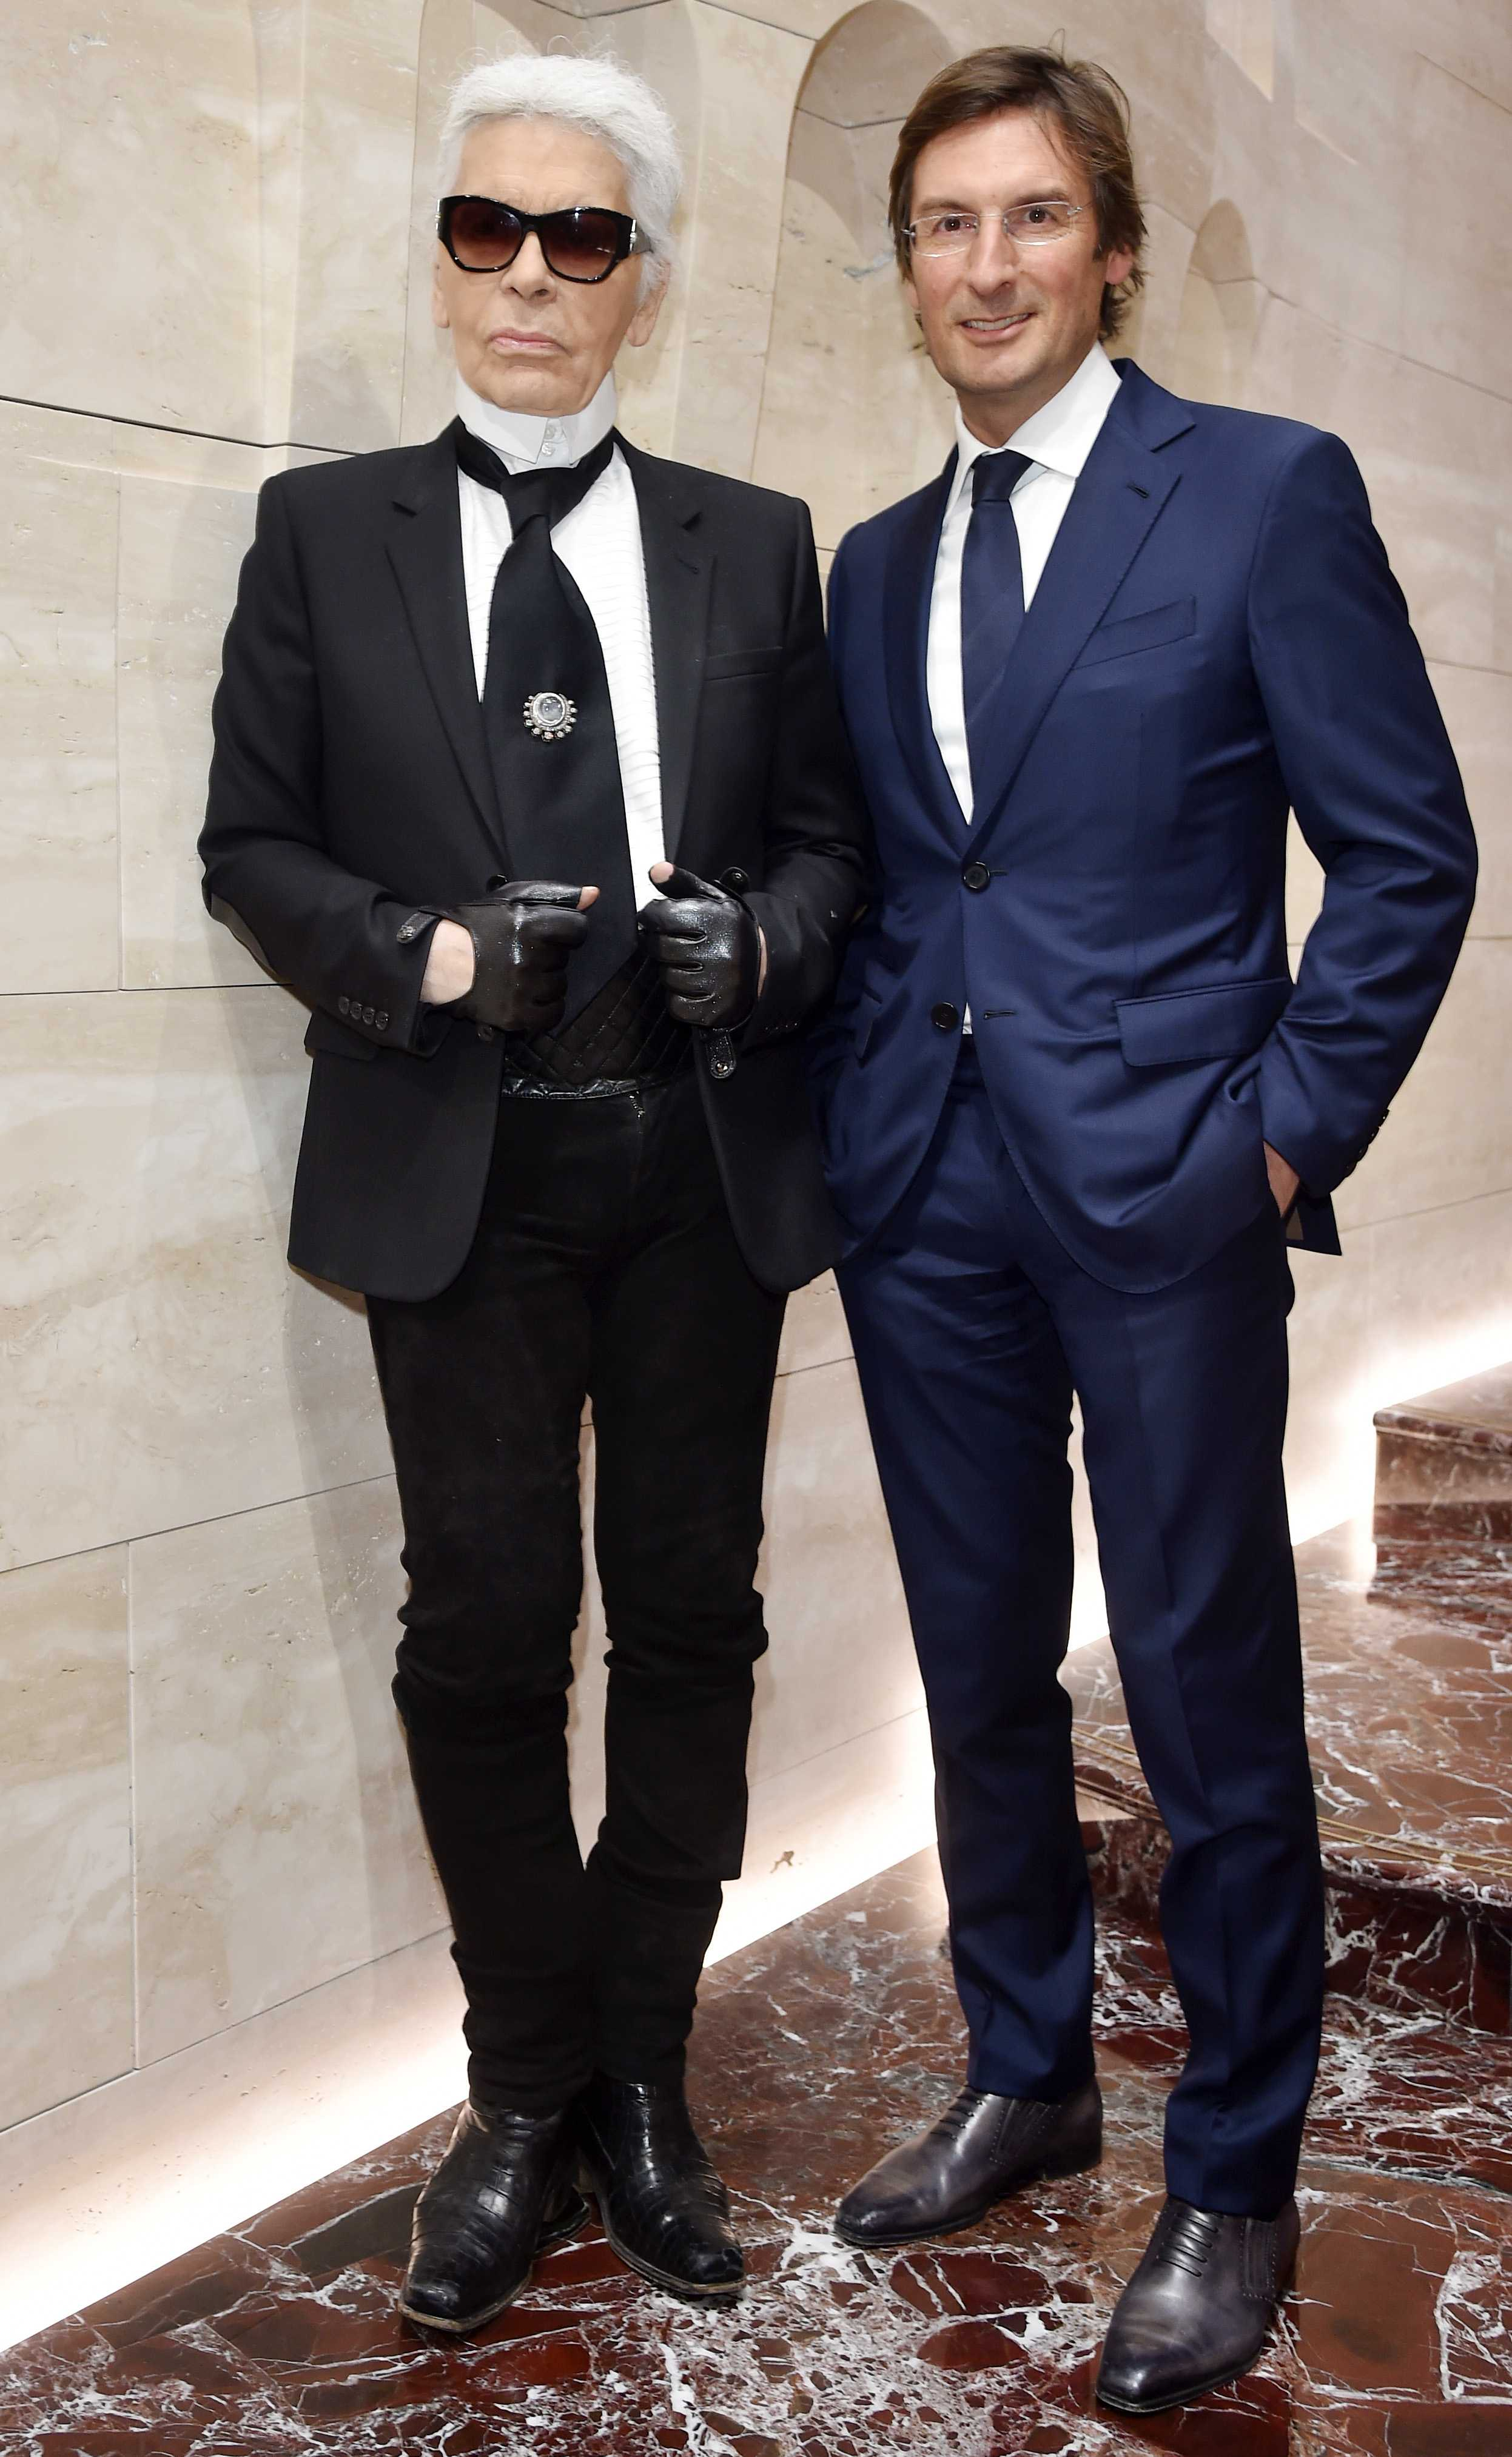 attends Palazzo FENDI And ZUMA Inauguration on March 10, 2016 in Rome, Italy.